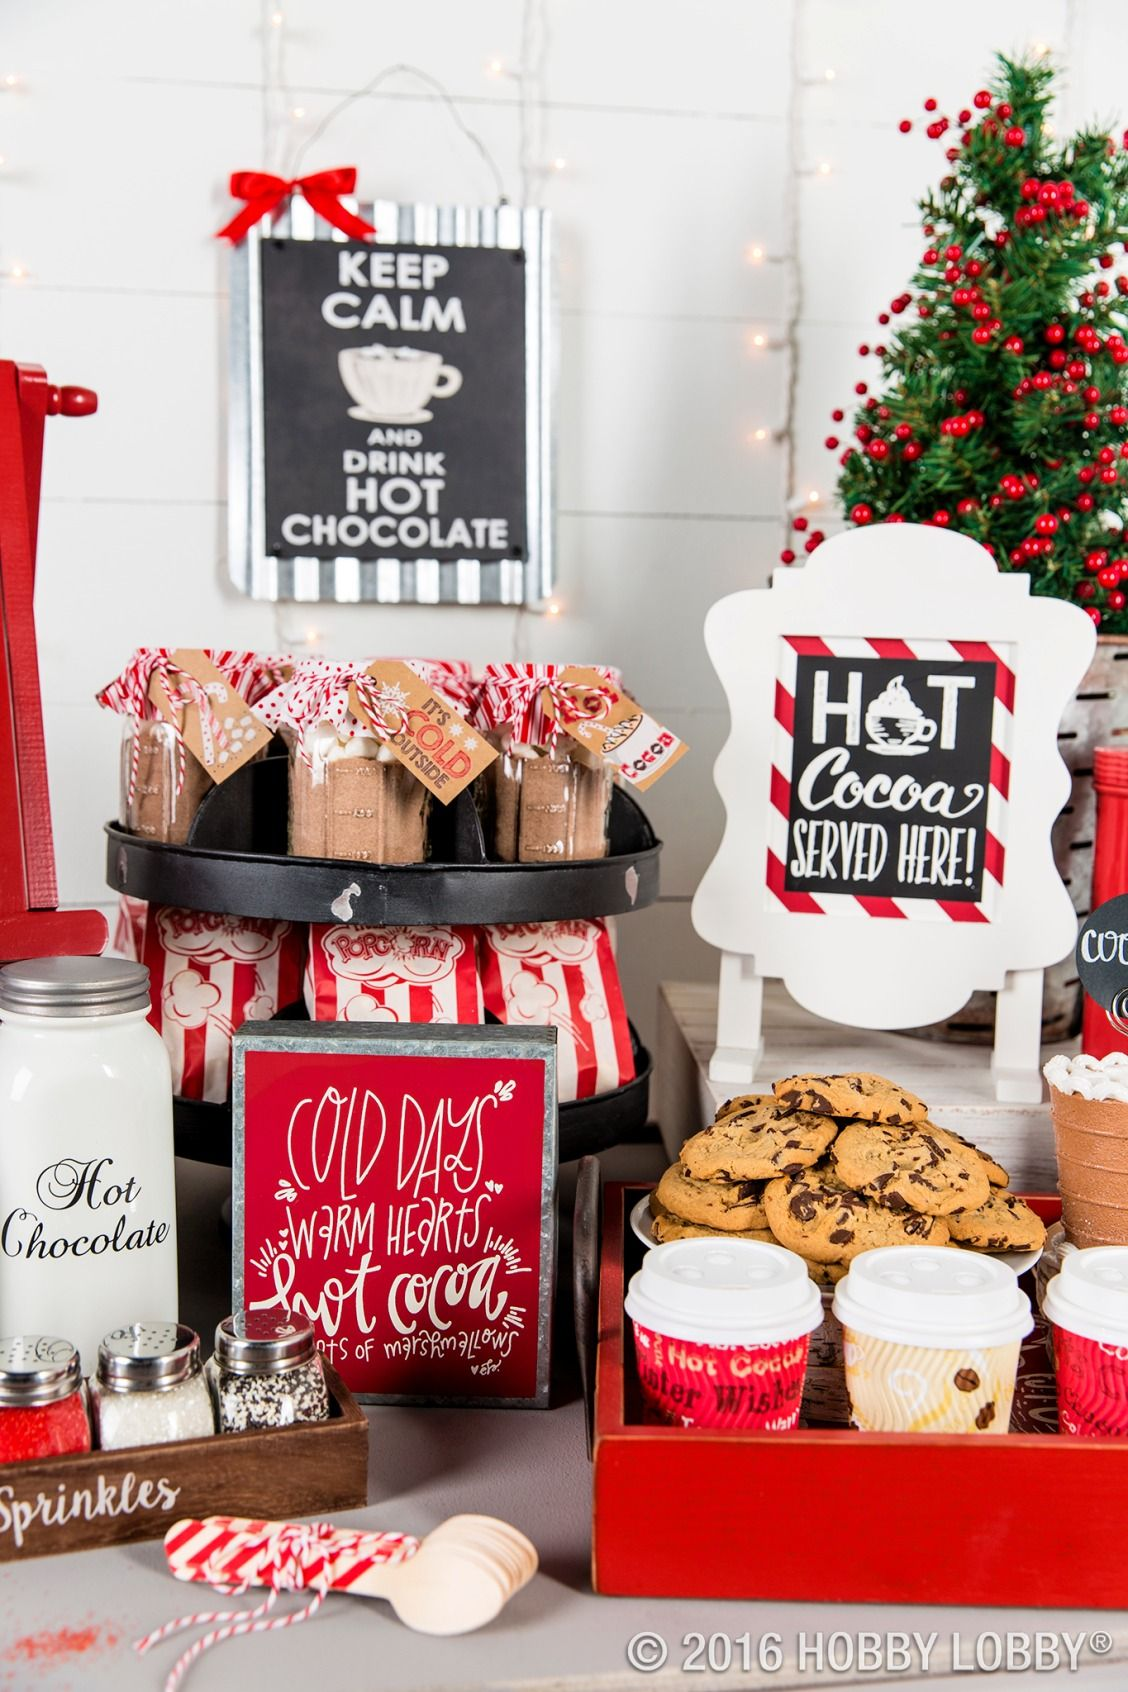 This Christmas, host a hot chocolate-themed movie night for family and friends! #hotchocolatebar